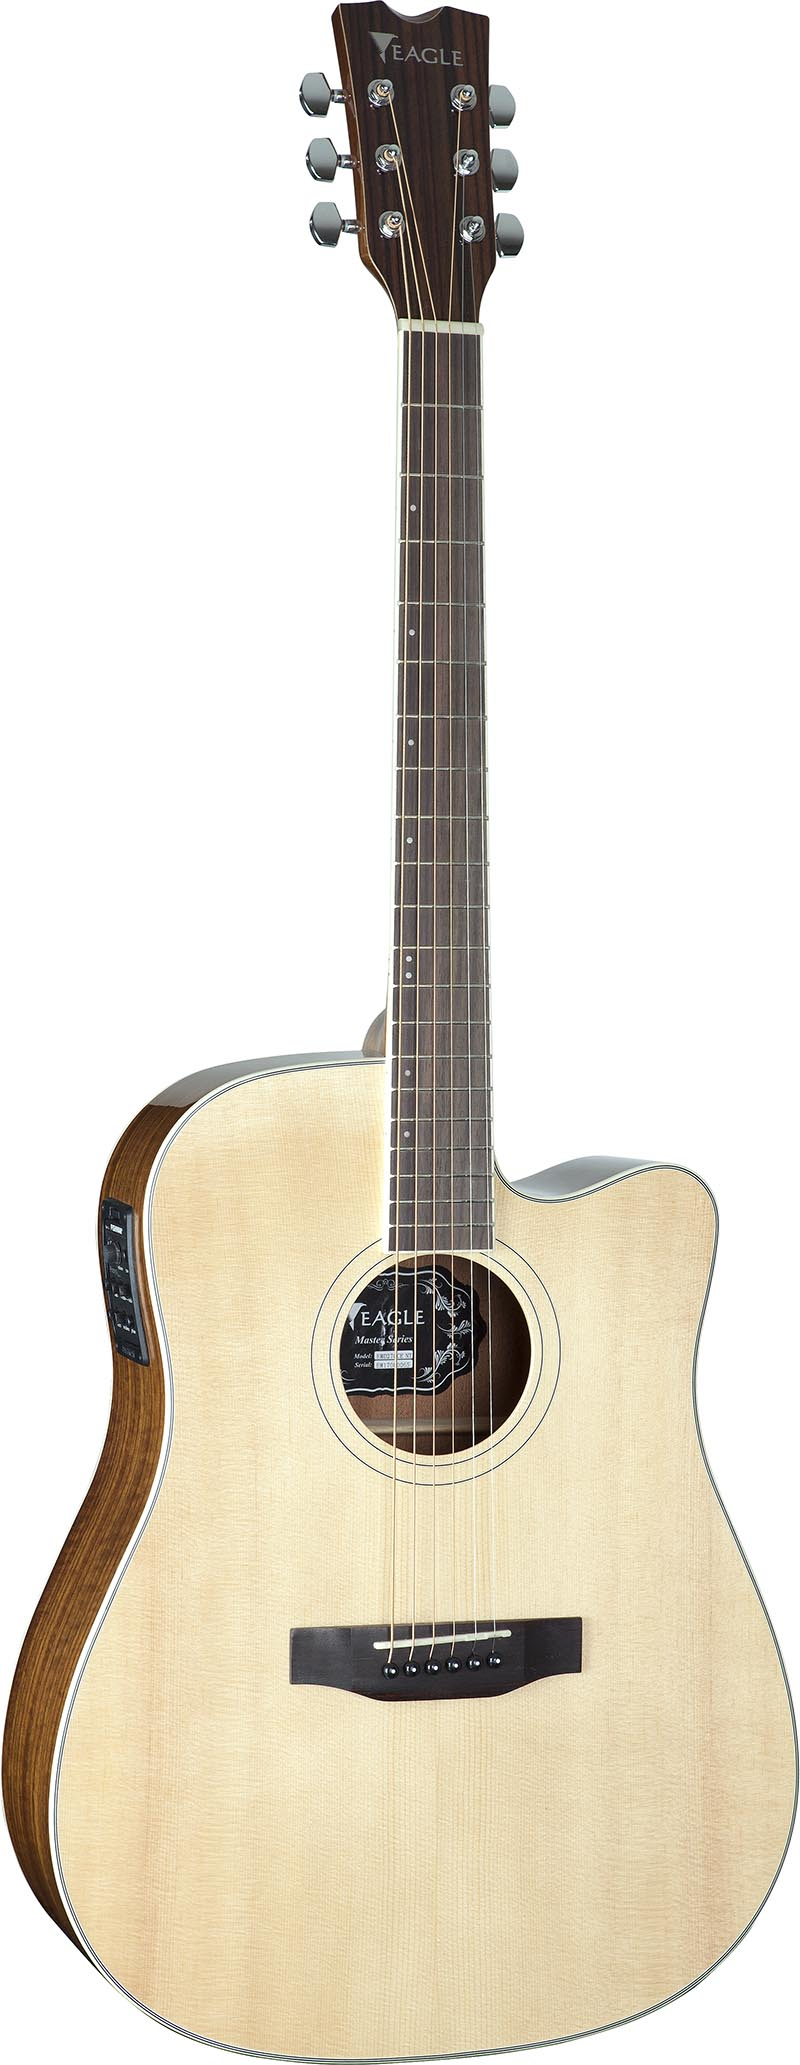 emd270ce violao folk dreadnought tampo solido eagle emd270ce nt natural visao frontal vertical